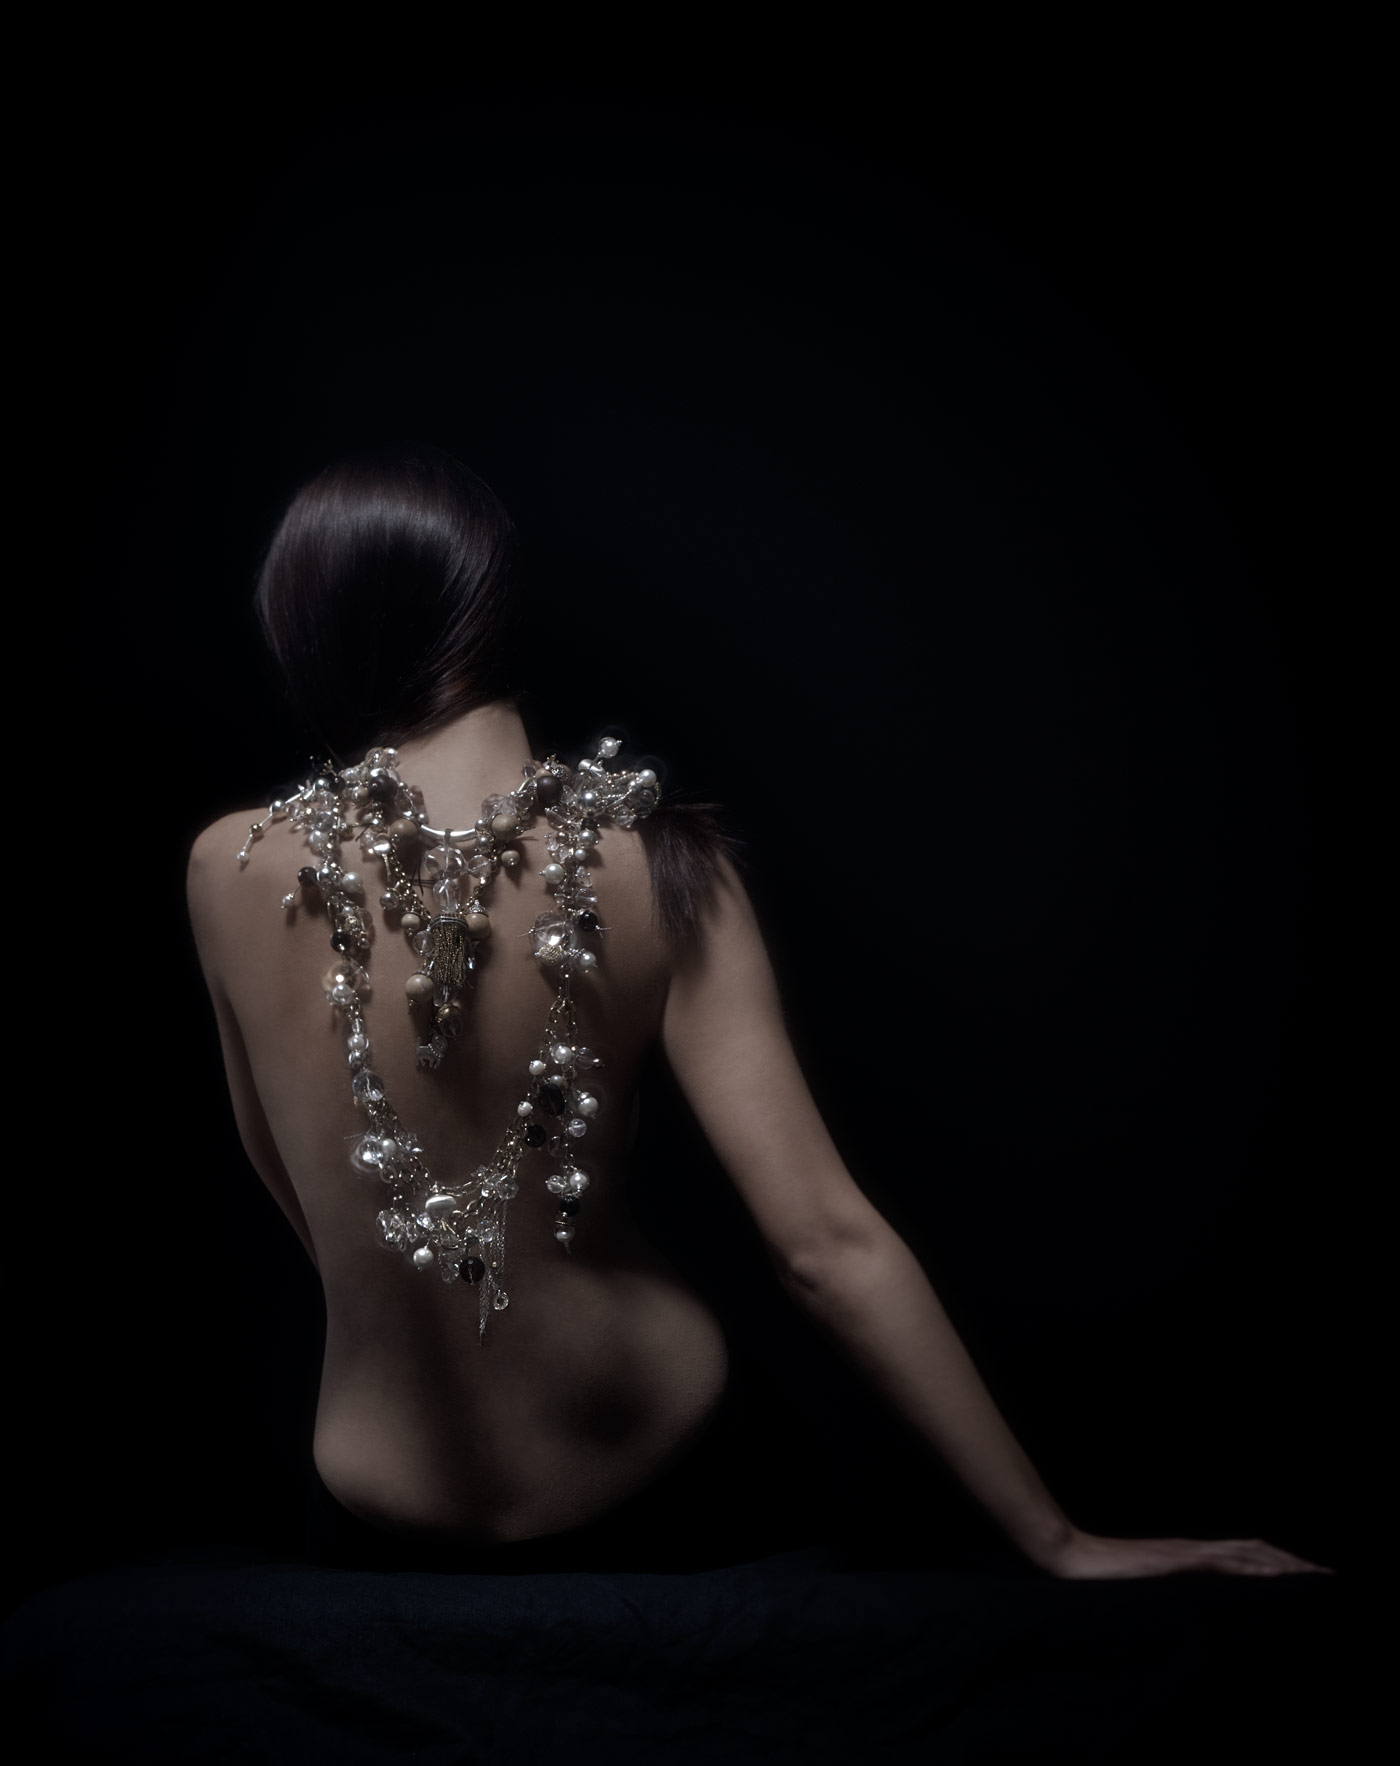 Rasa_Juskeviciene_Jewellery_2